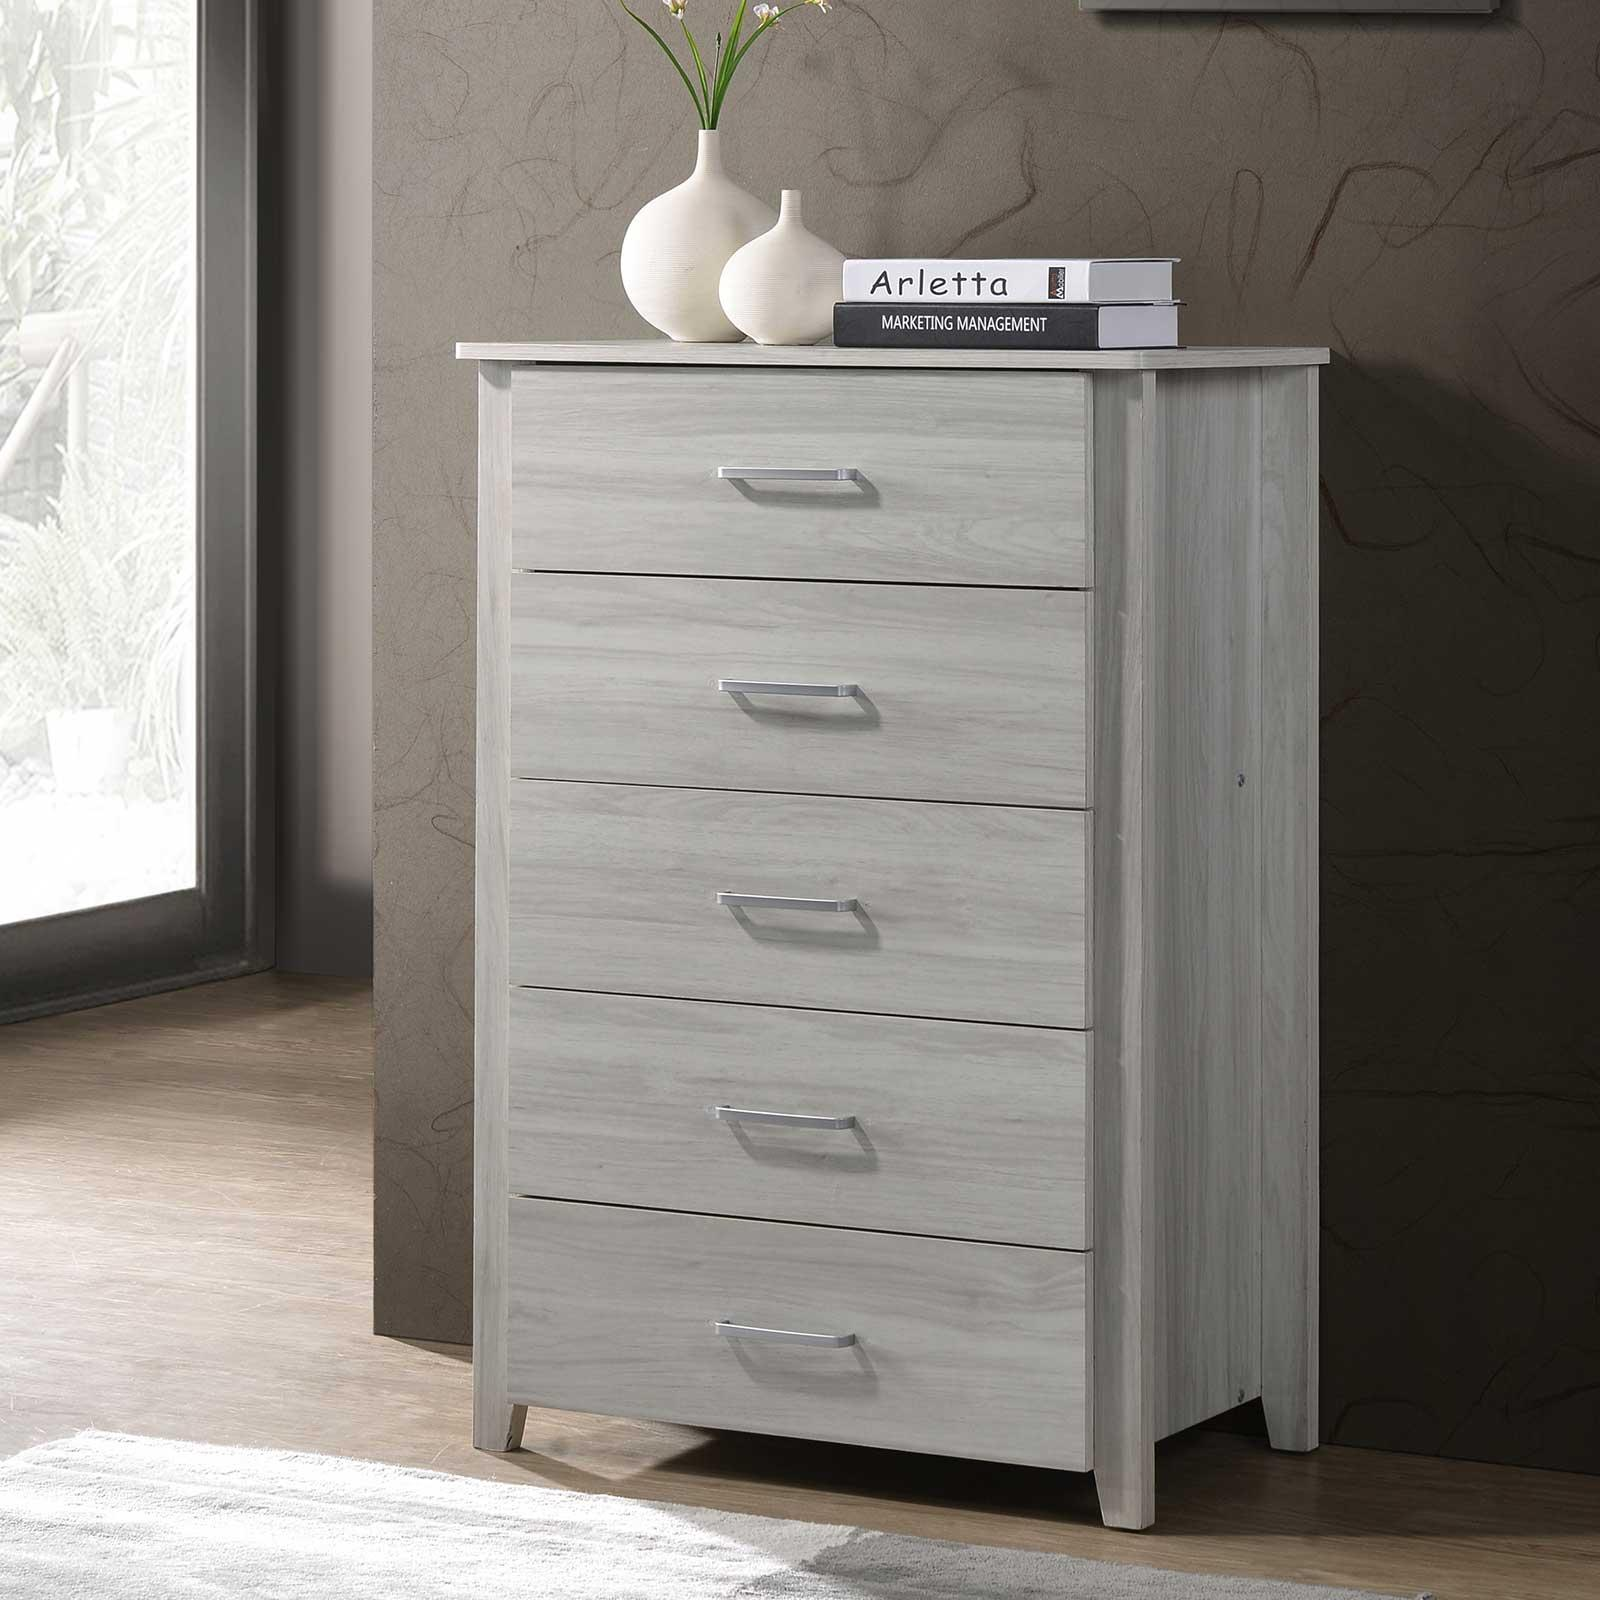 5 Chest of Drawers in White Oak Cabinet Storage Tallboy Bedroom⭐ E-LIVING Furniture